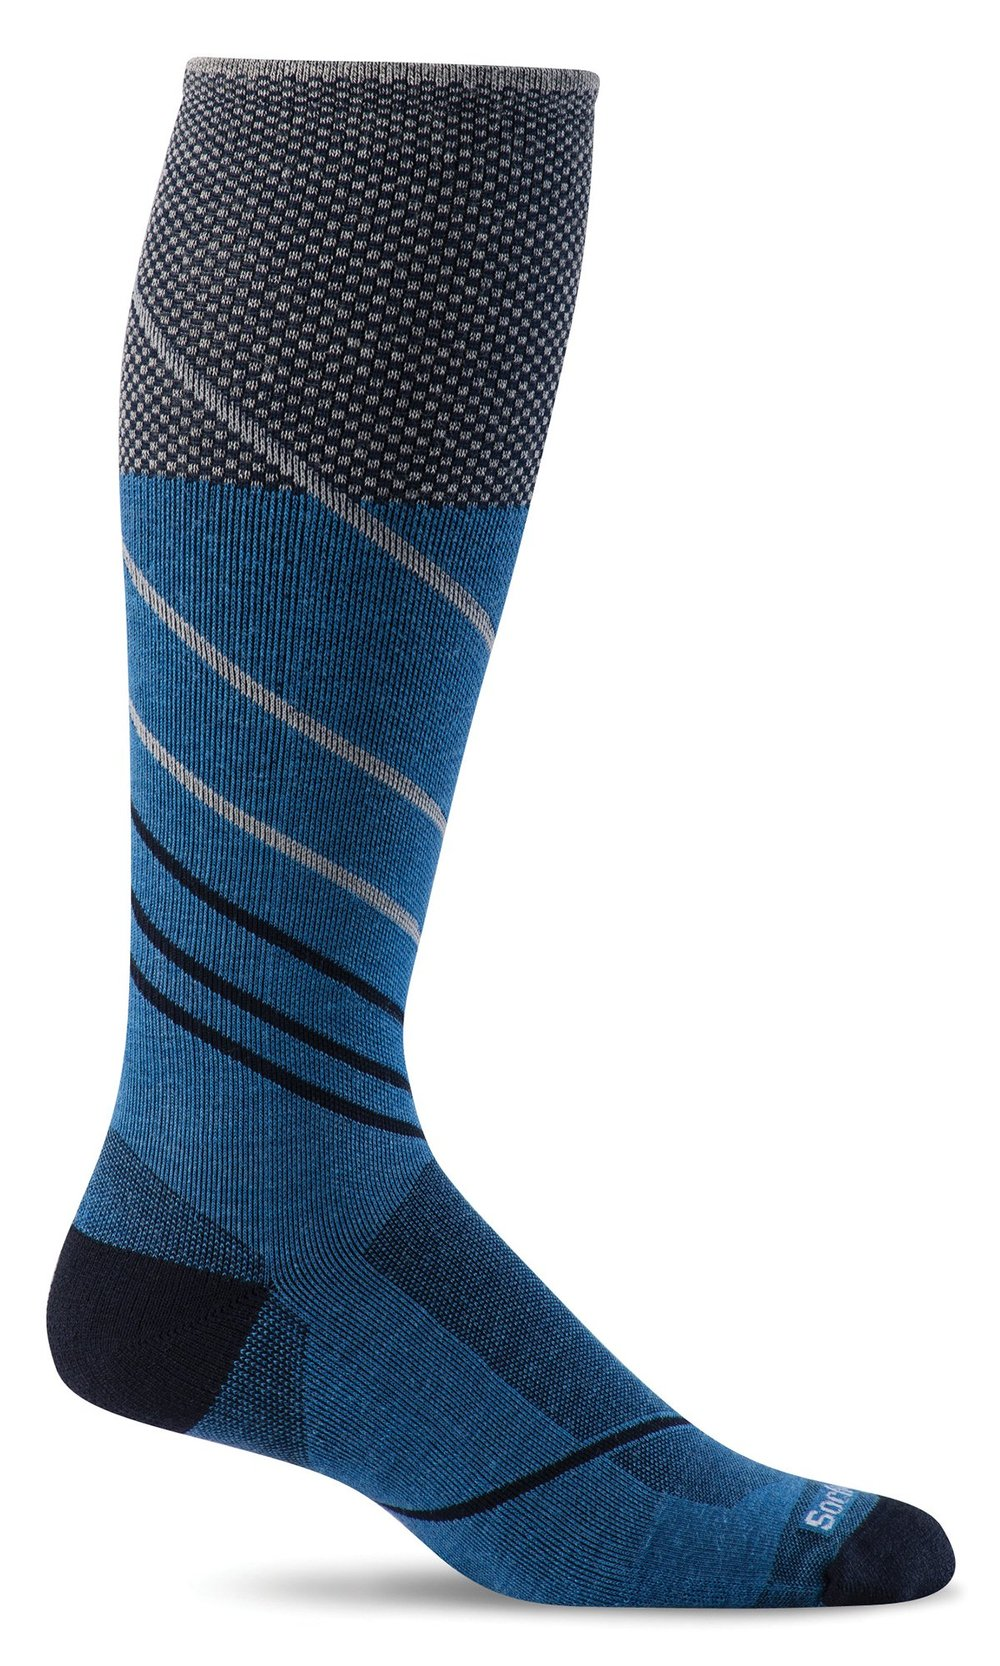 Pulse Knee-High - Ocean Firm Compression (20-30mmHg)